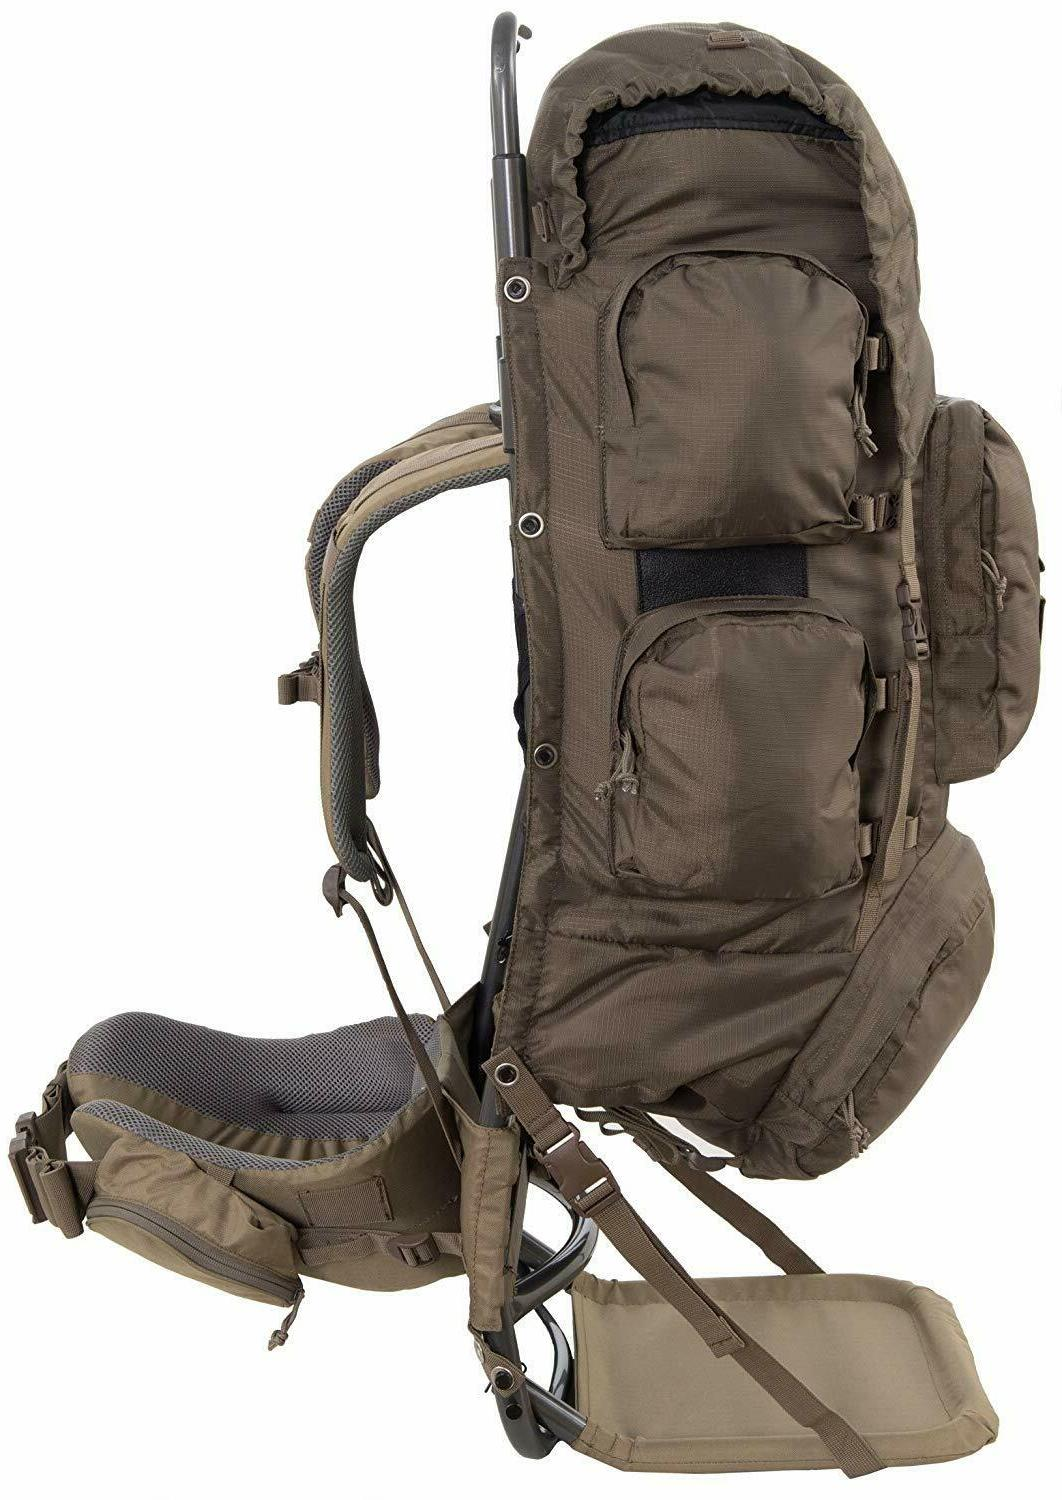 Tactical Backpack Camping Full Gear Frame Pocket